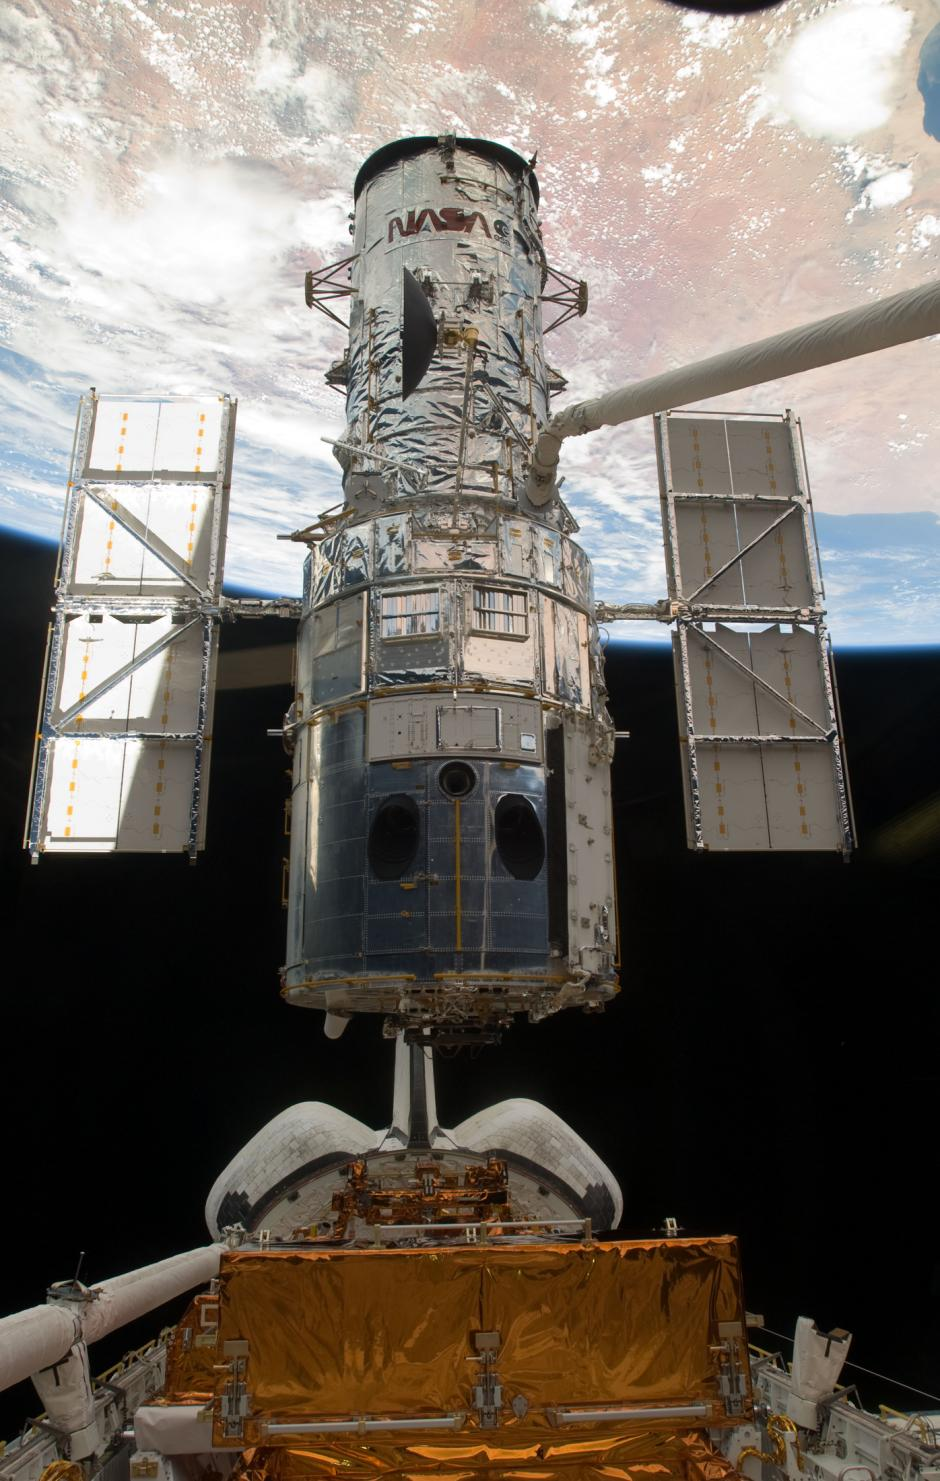 Hubble reparation jorden atlantis